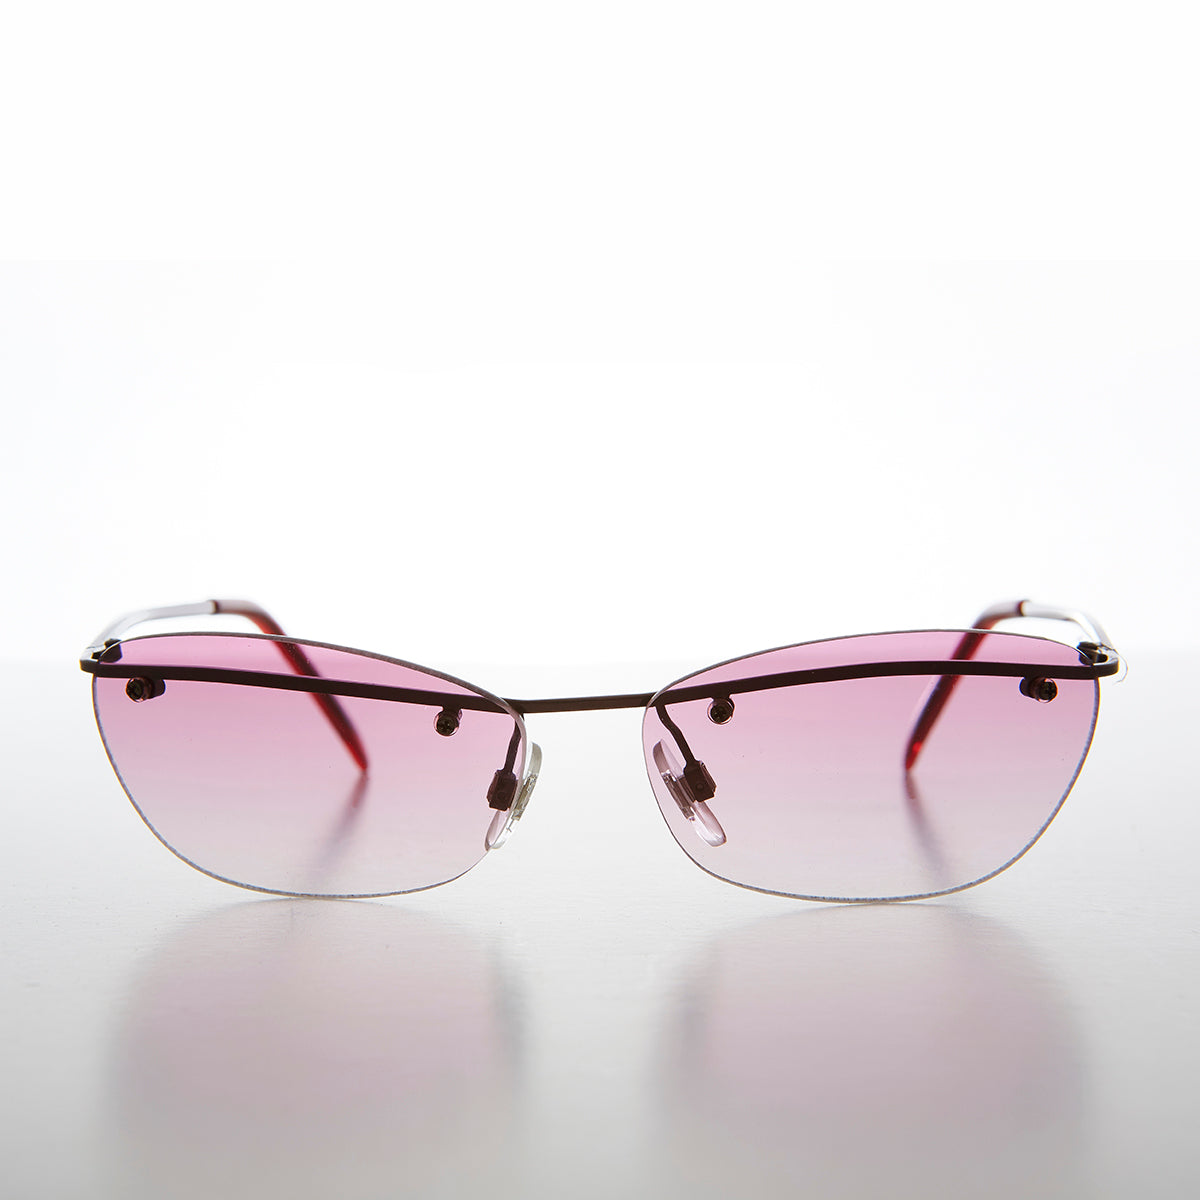 Unique 90s Colored Lens Vintage Sunglass